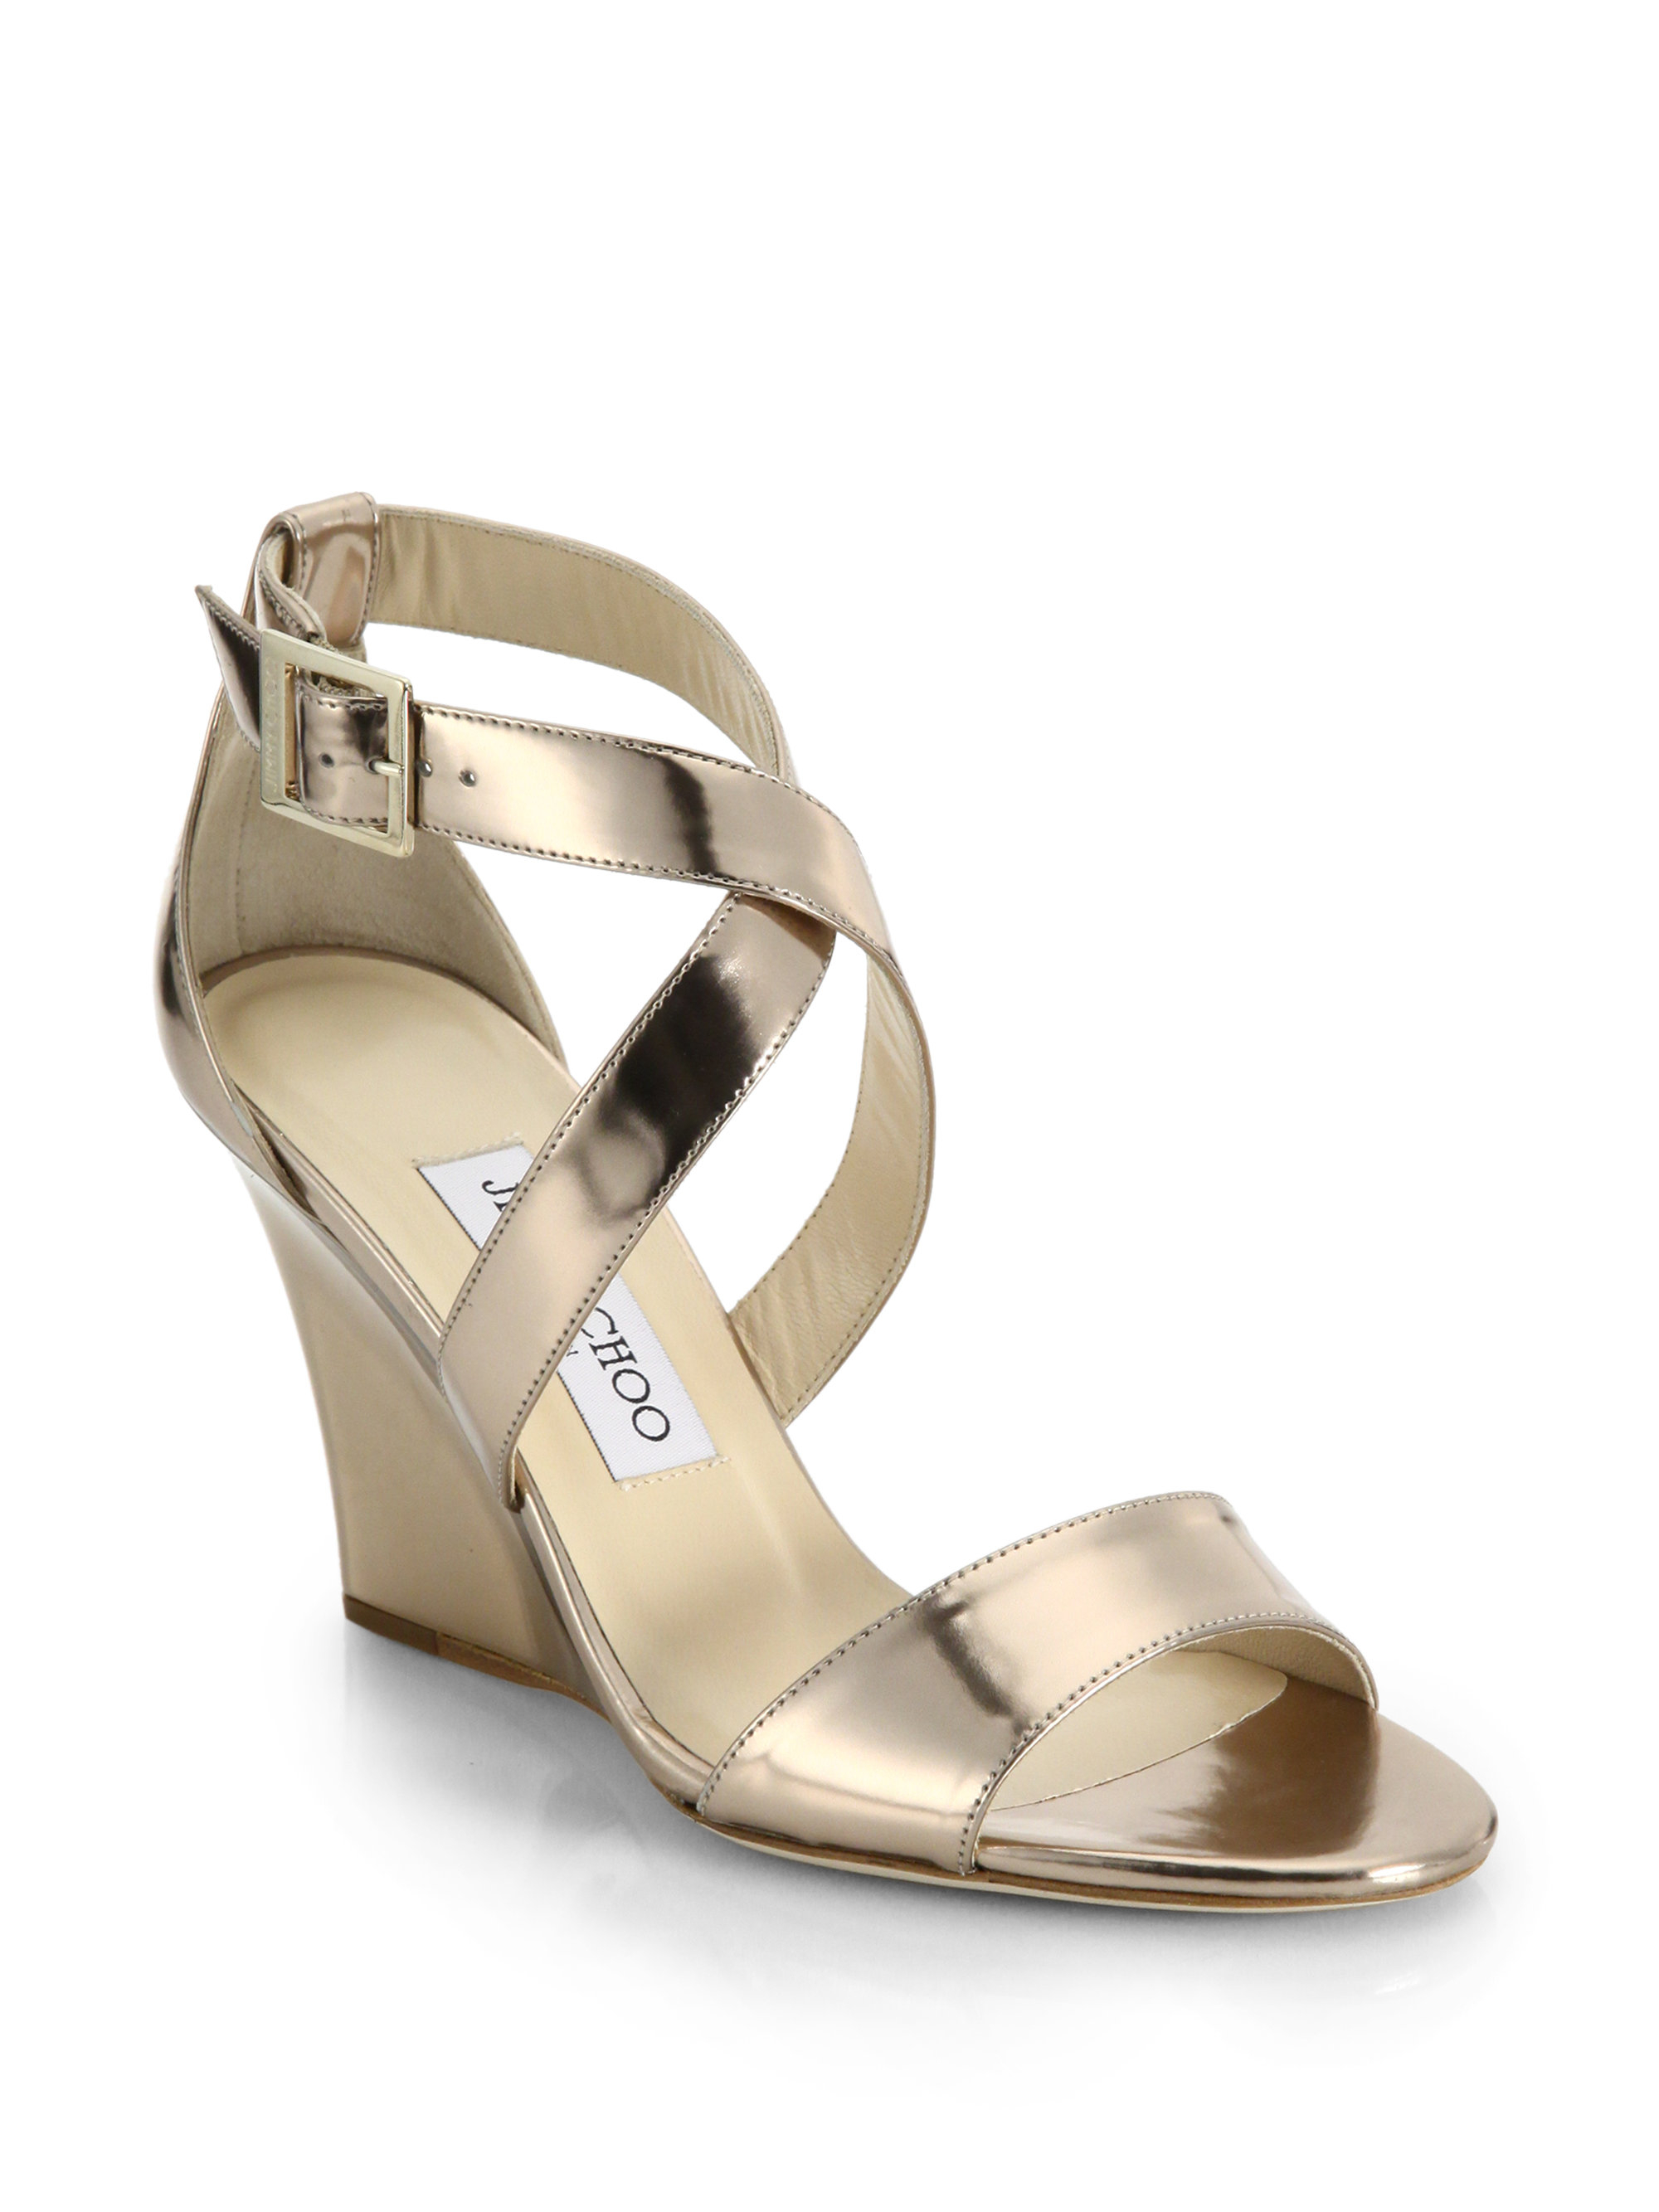 15f865d66f0 Lyst - Jimmy Choo Fearne Metallic Leather Strappy Wedge Sandals in ...